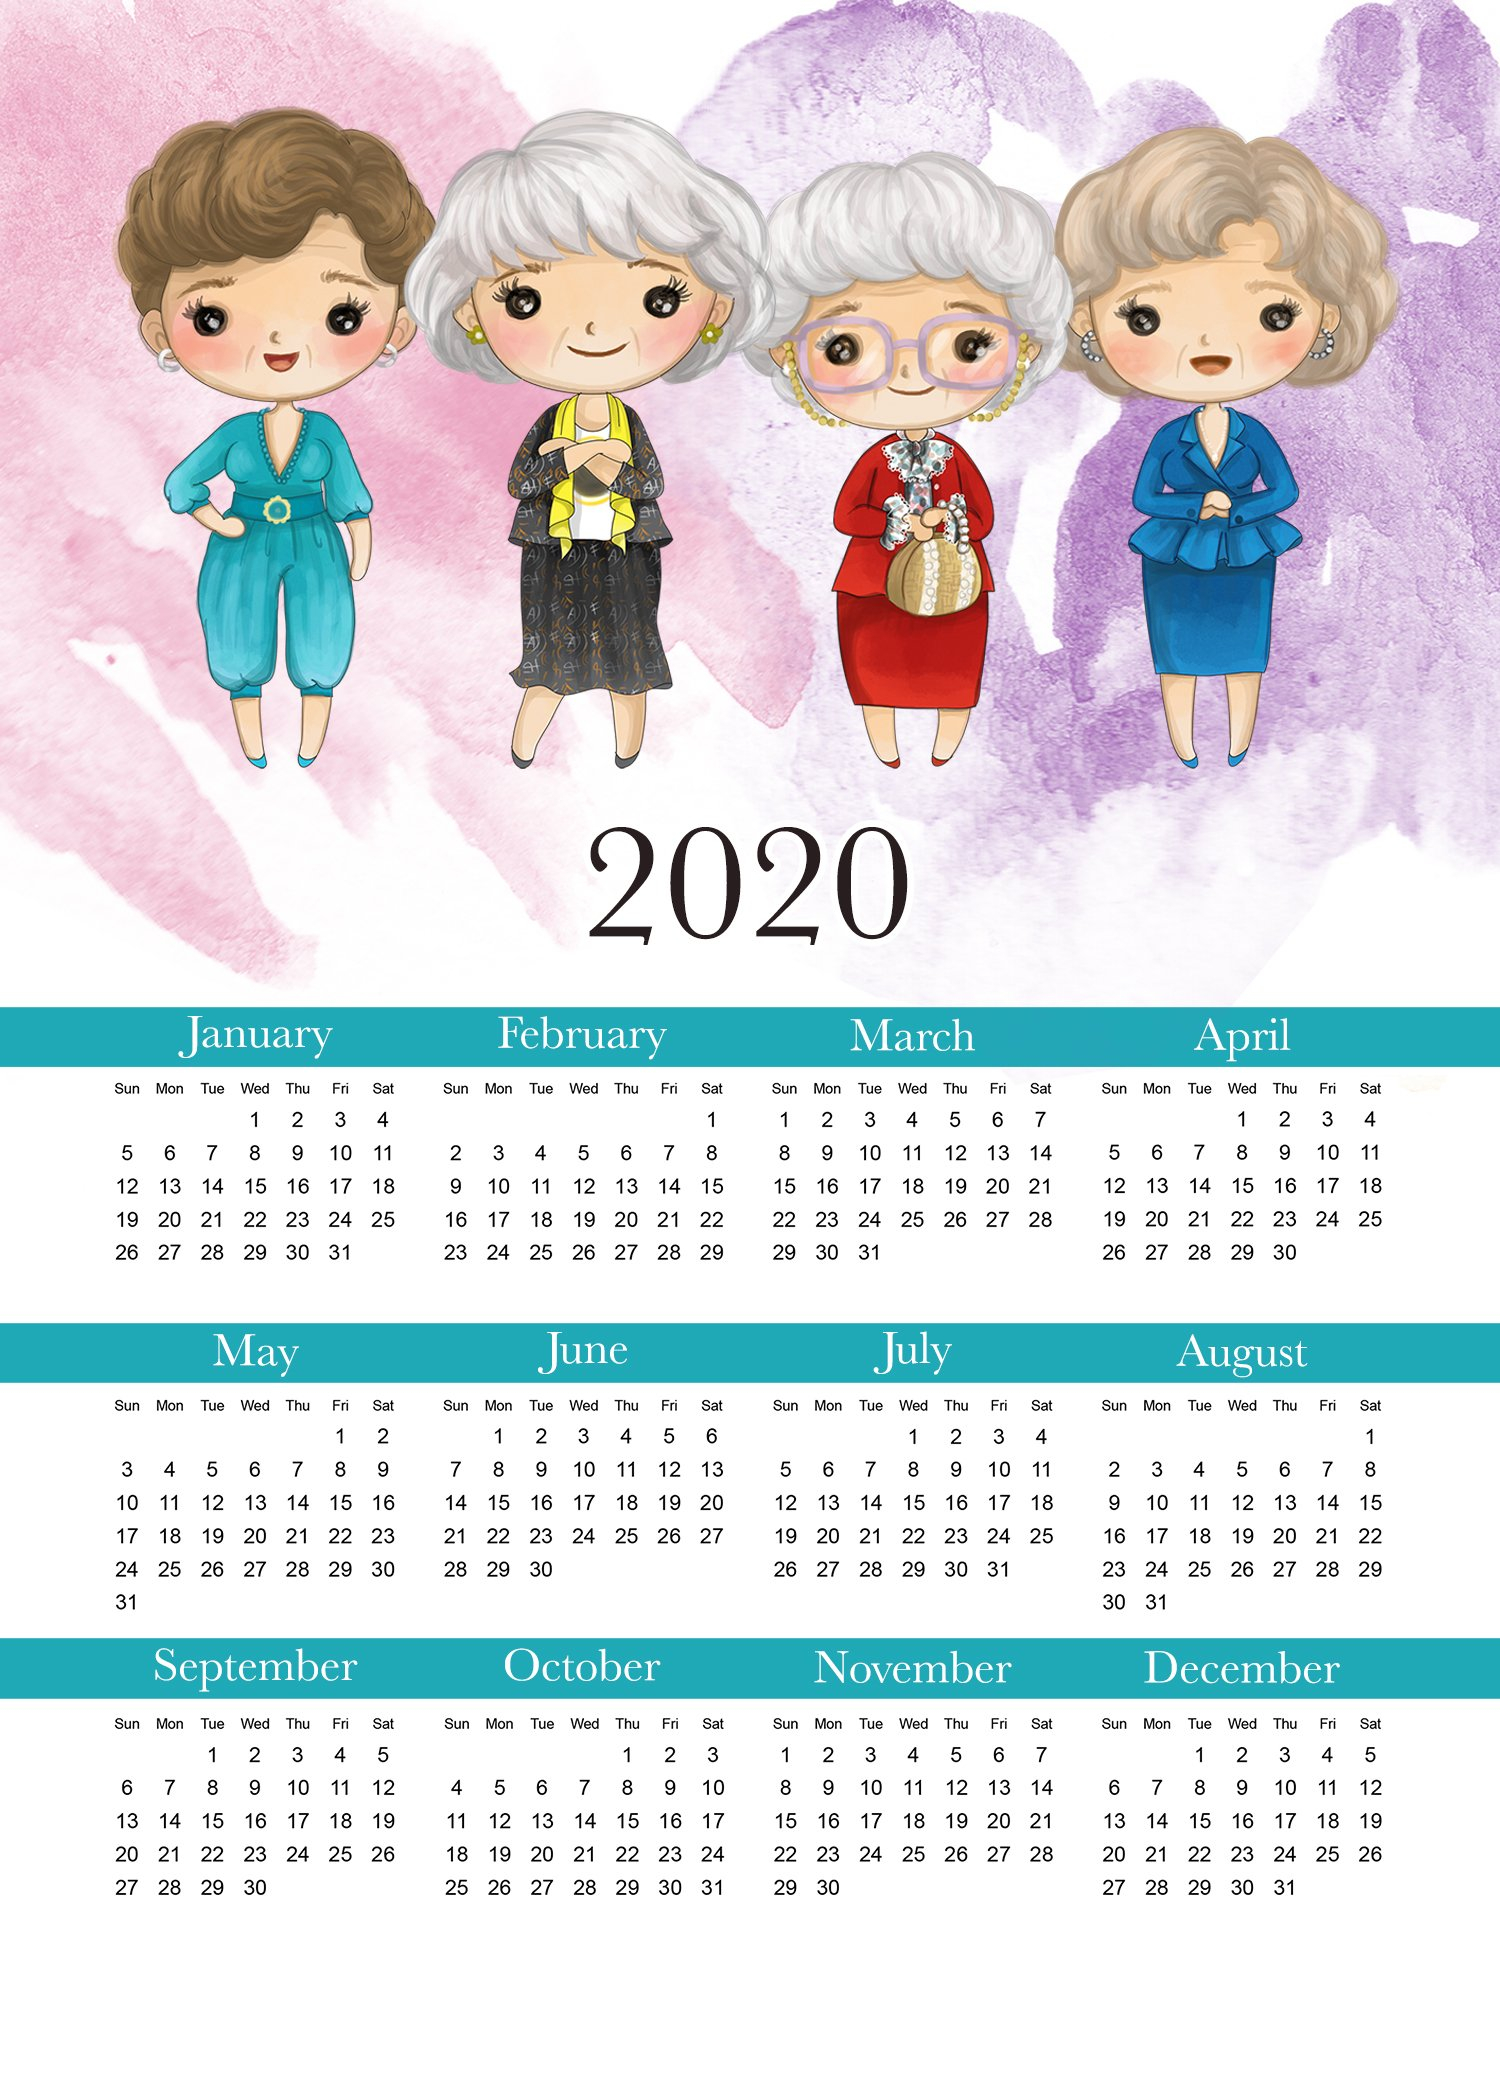 Free Printable 2020 Golden Girls Calendar – The Cottage Market Free 2020 Checkbook Size Calendar Same Size As A Check For The Year